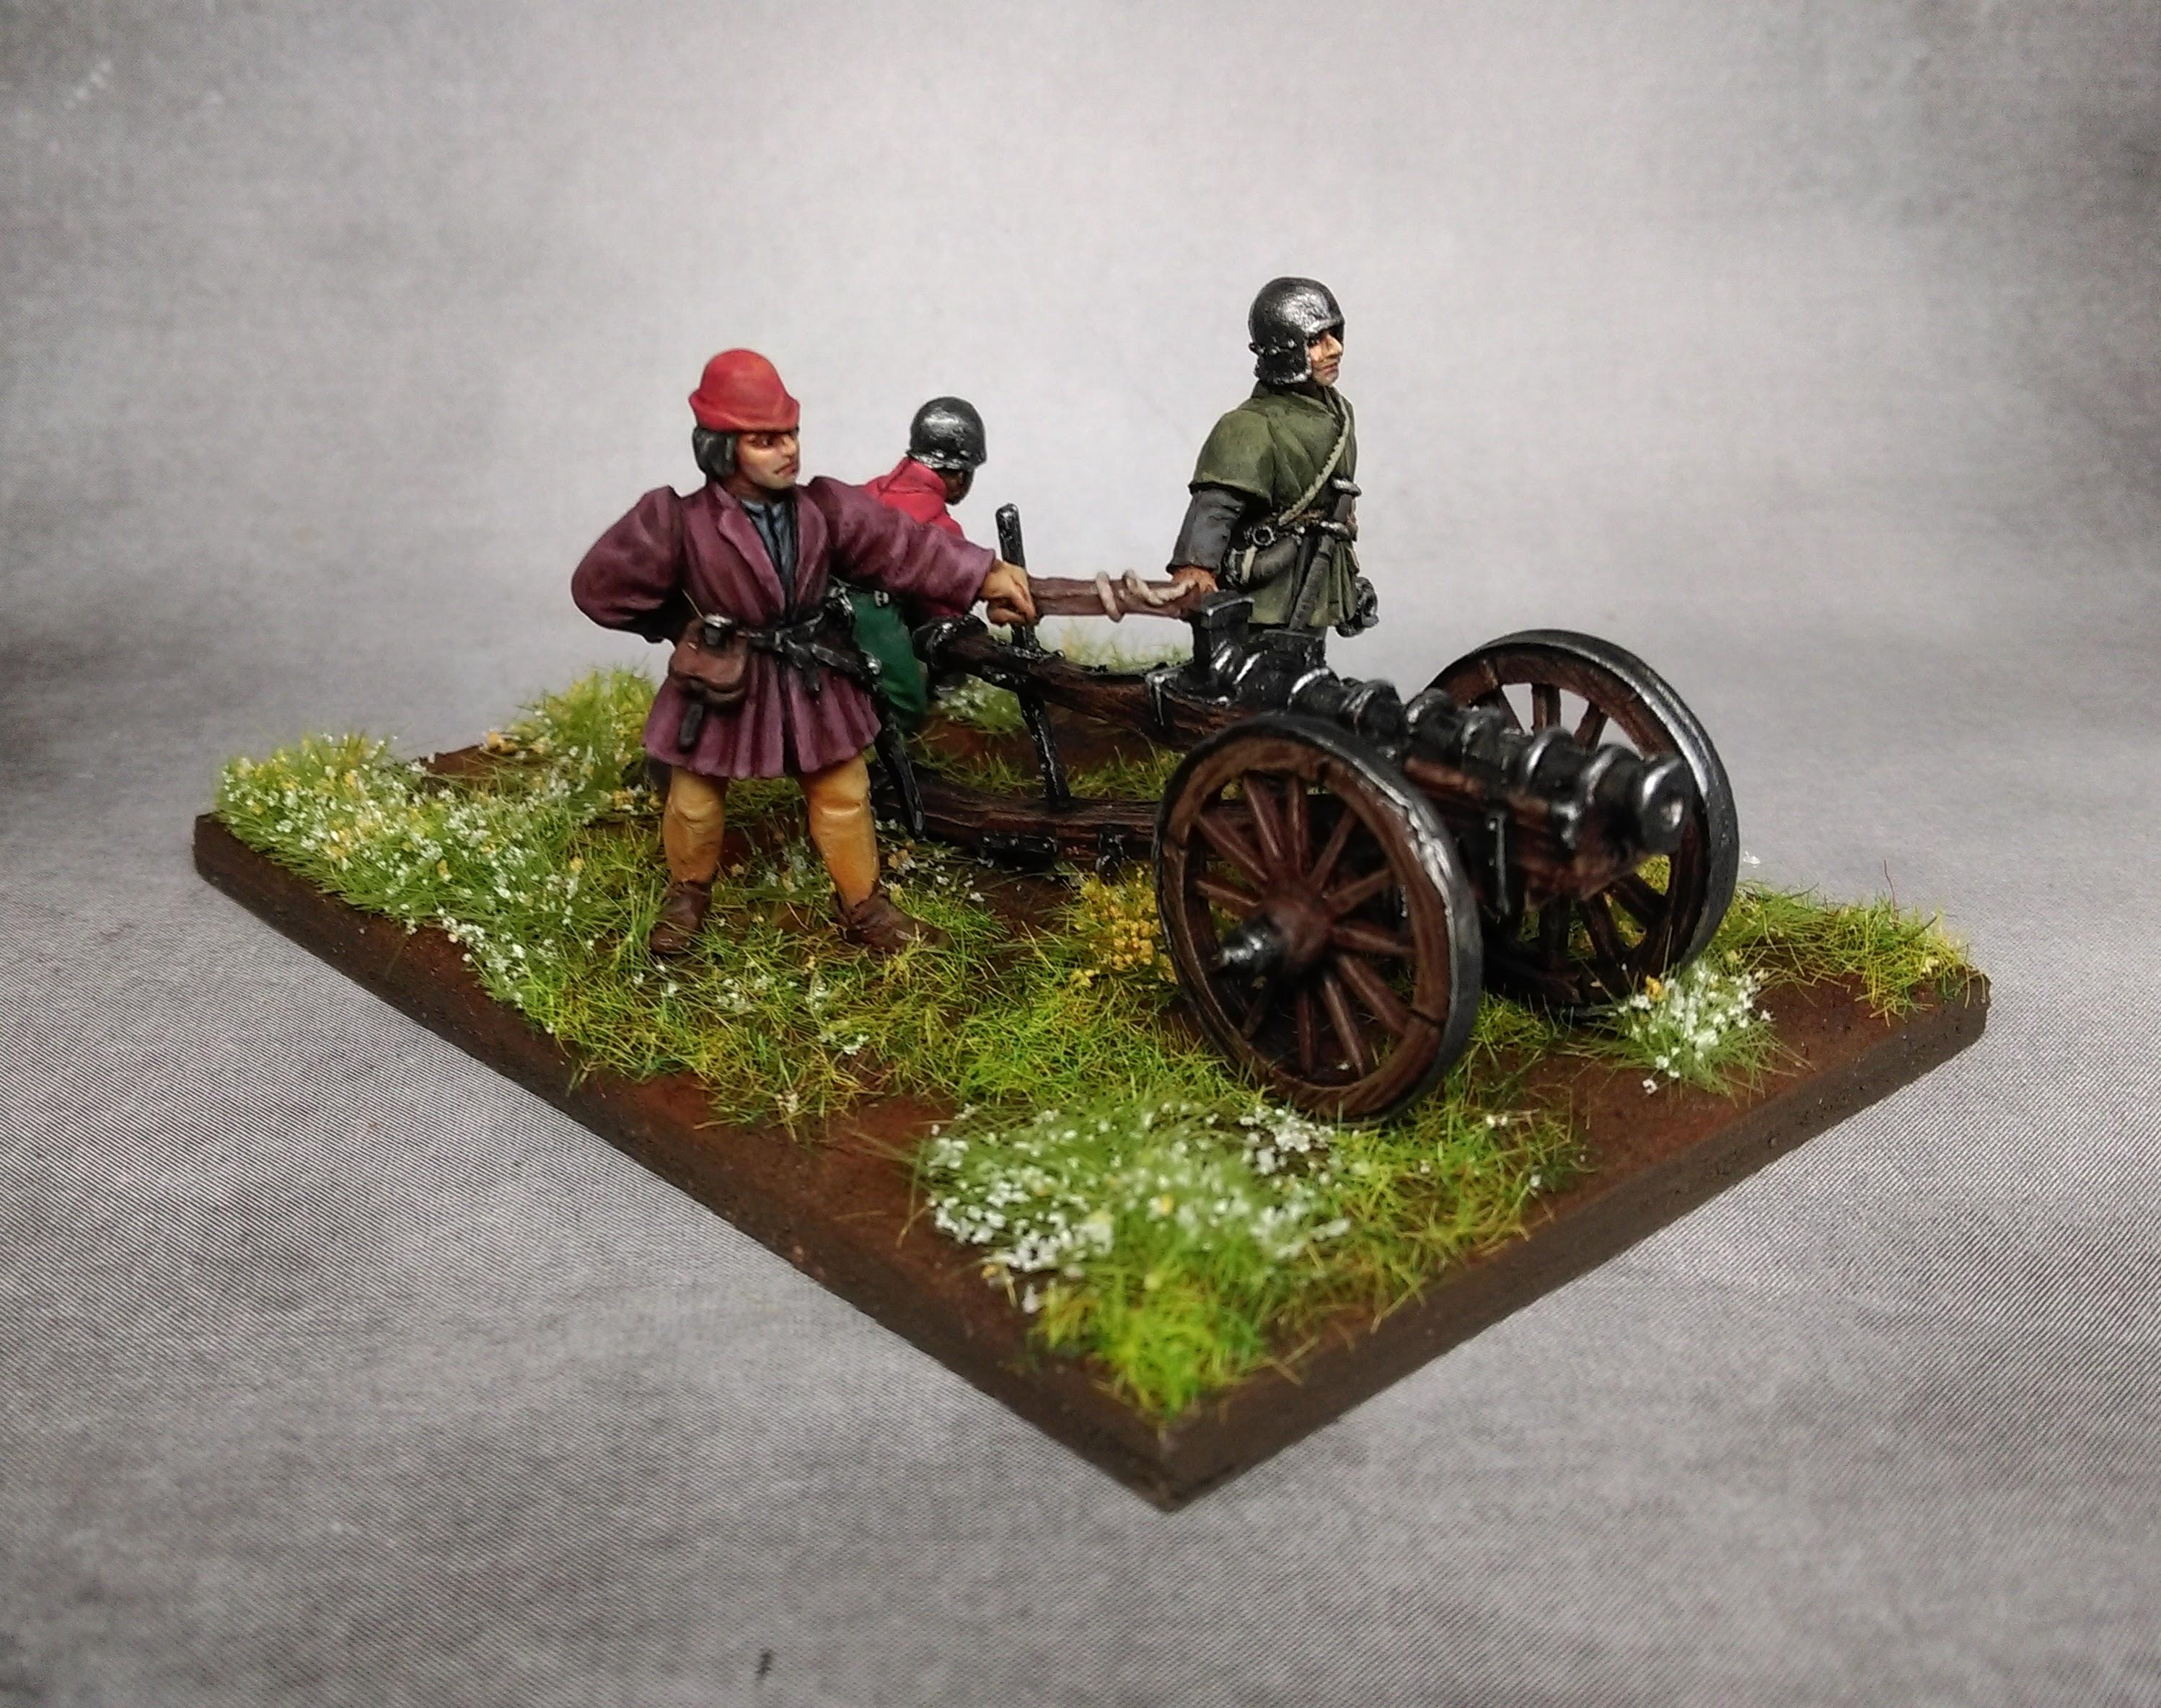 Age Of Sigmar, Artillery, Cannon, Empire, Medieval, Perry Miniatures, Warhammer Fantasy